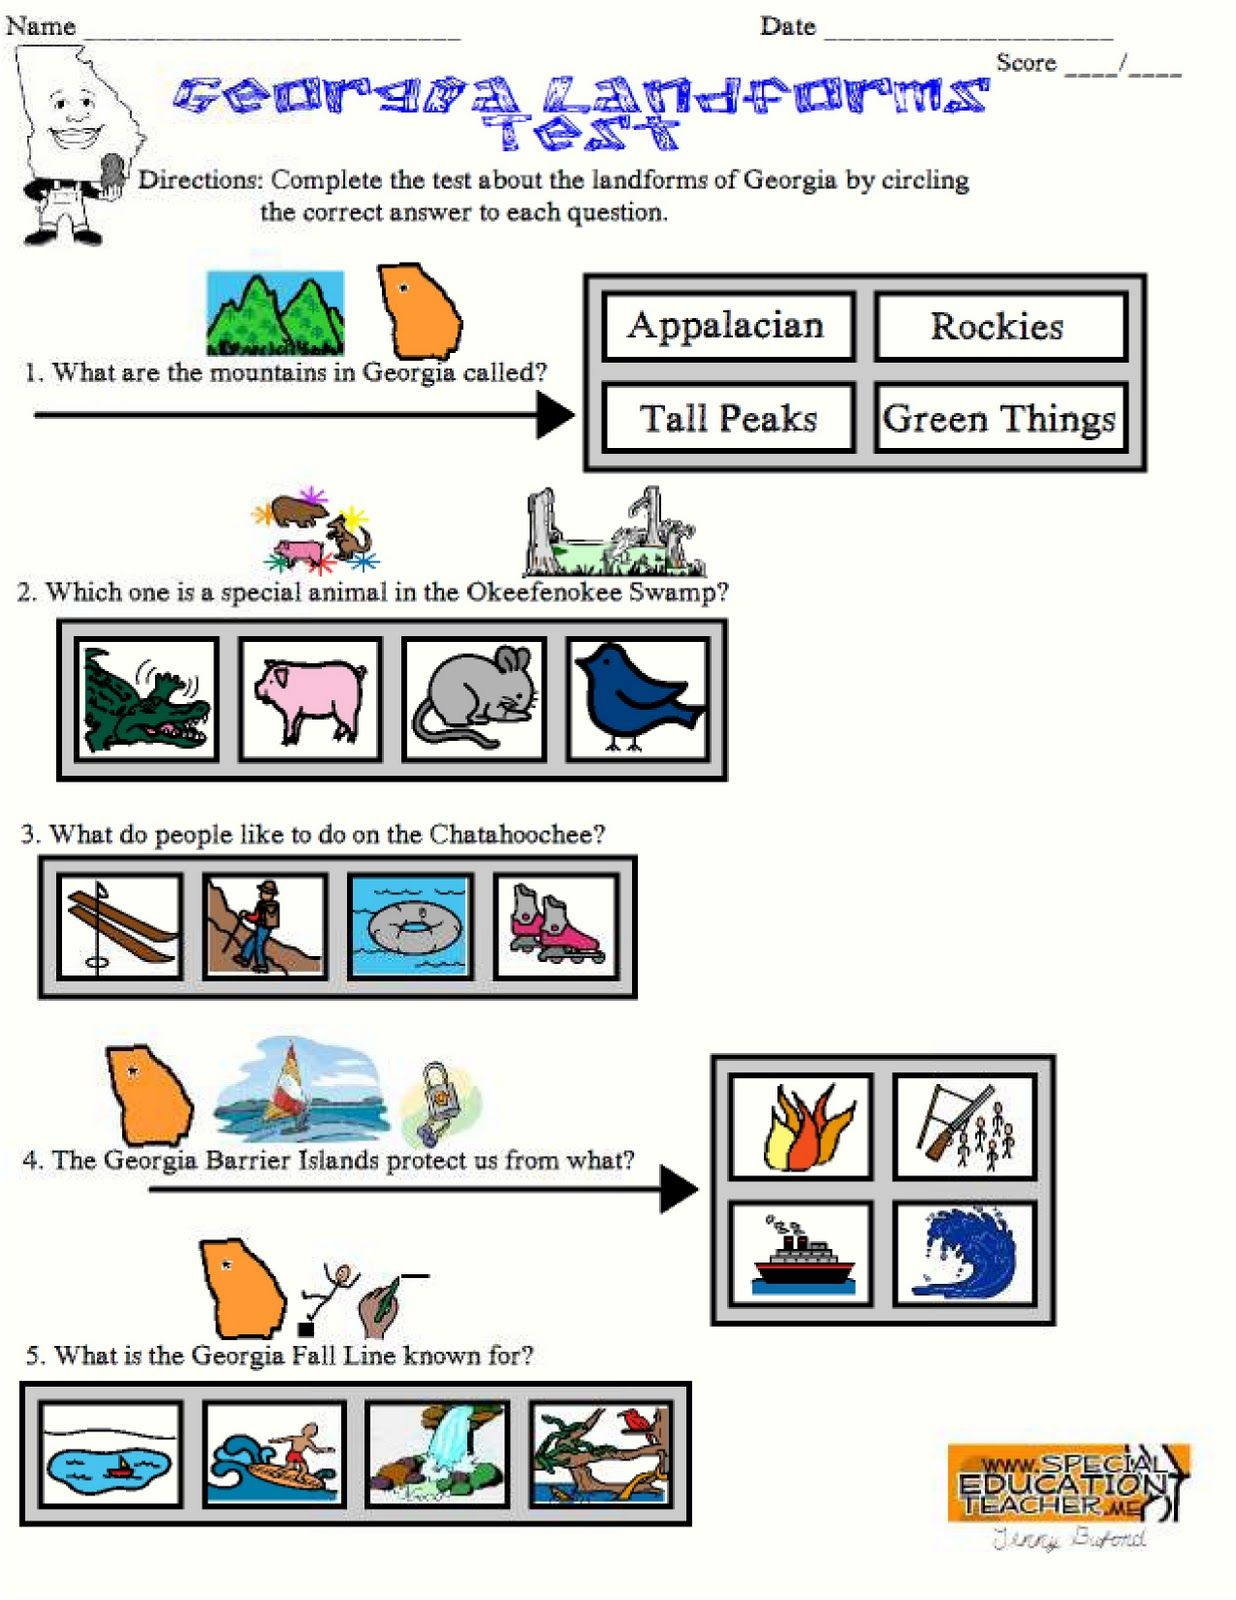 Here Is An Example Of A Low Incidence Worksheet That Gives Students Good Visuals To Help Work Through The Assignment Worksheets This Or That Questions Teaching [ 1600 x 1236 Pixel ]